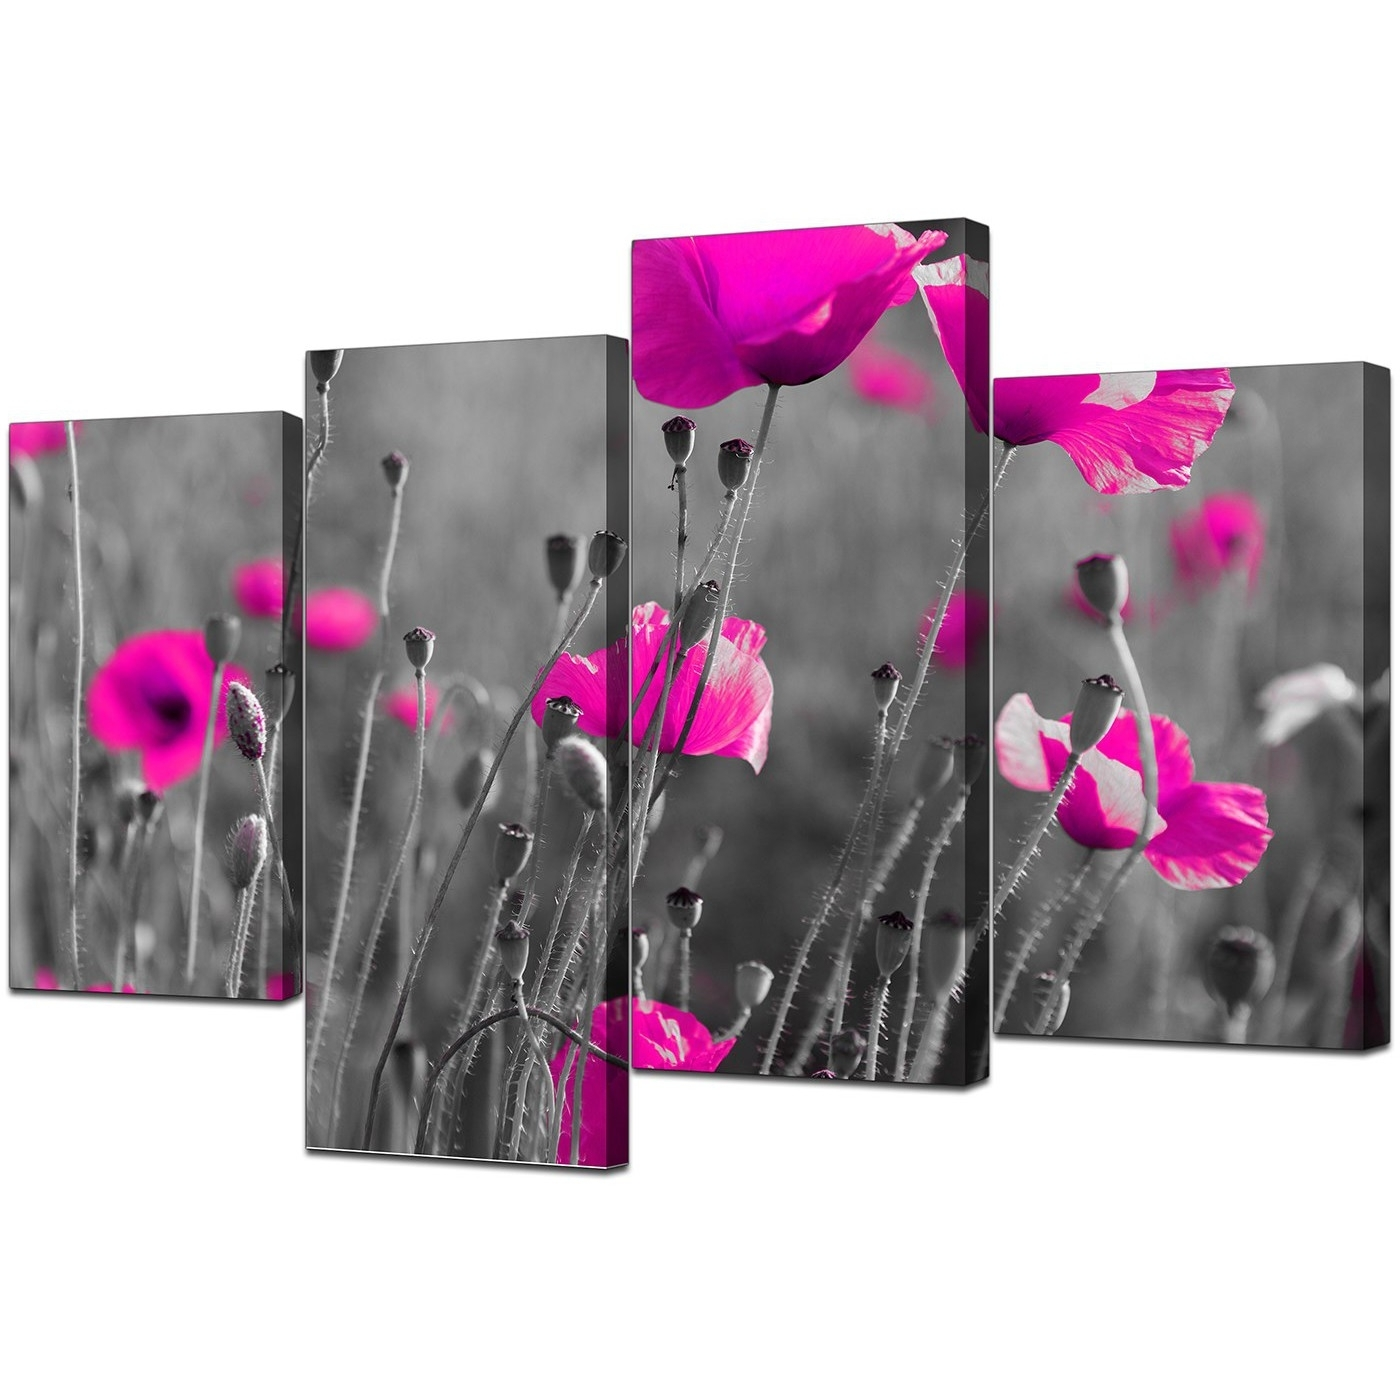 Trendy Canvas Art Of Pink Poppies In Black & White For Your Girls Bedroom Within Pink Canvas Wall Art (View 13 of 15)